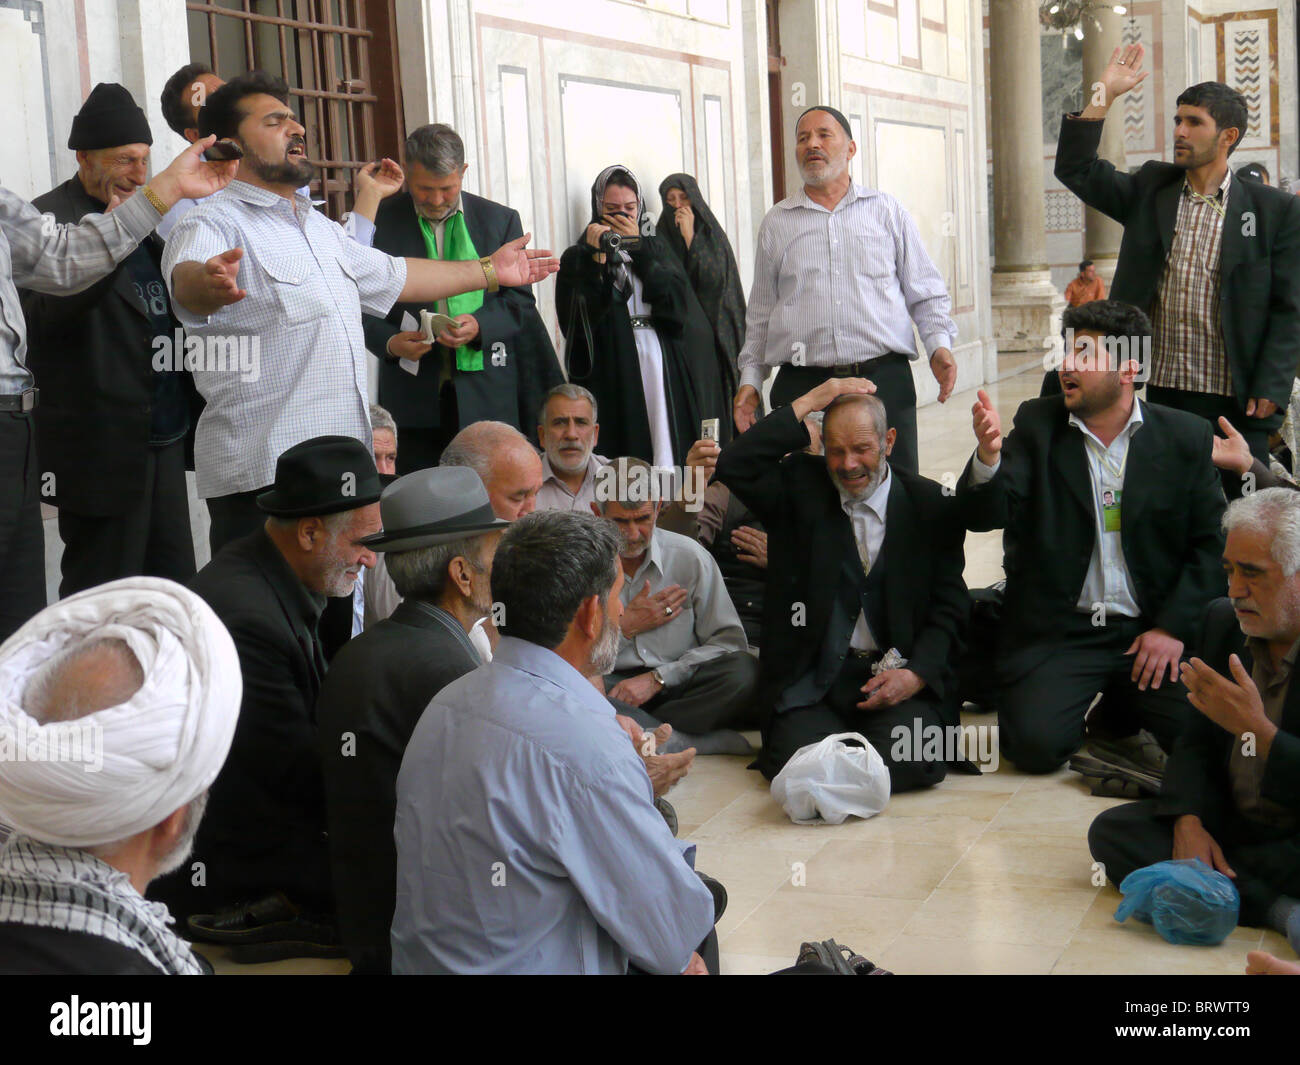 SYRIA Inside the Ummayad Mosque, Damascus. Iranian pilgrims taking time for prayer and reflection. PHOTOGRAPH by - Stock Image